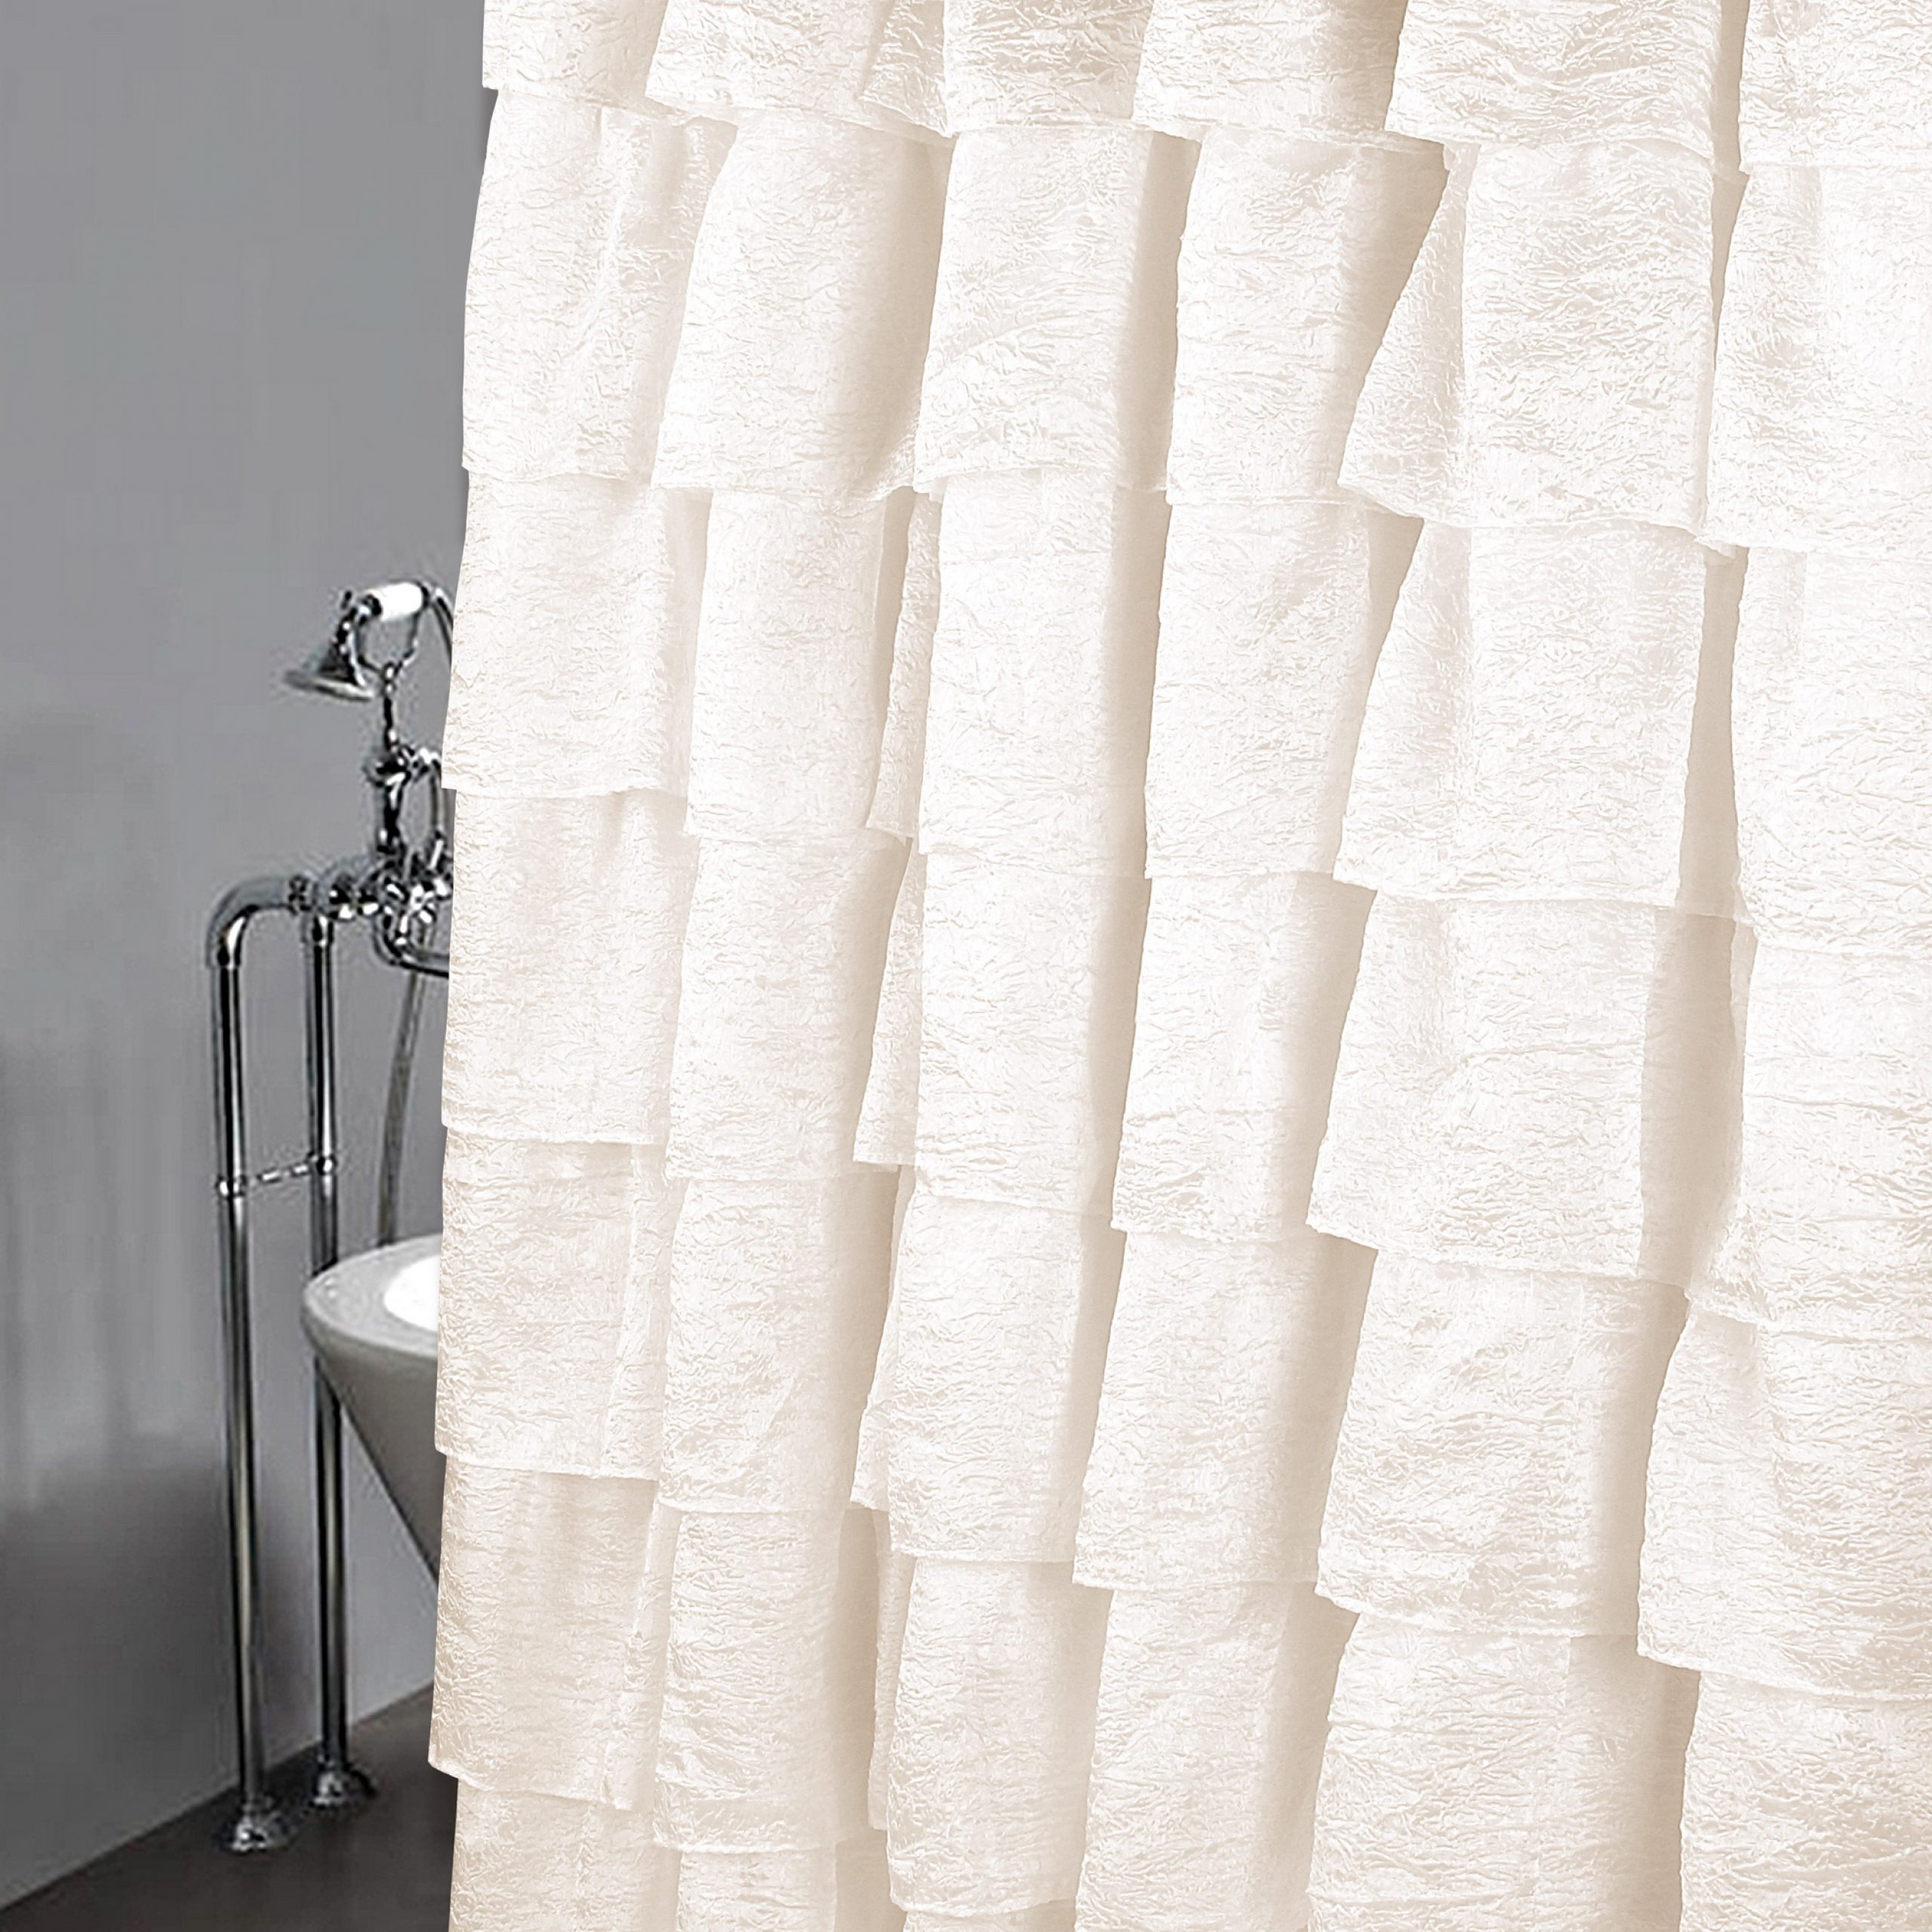 """Golden Linens Crushed One Piece Voile Sheer Shabby Chic Gypsy Ruffle Window Curtain Panel (shower Curtain 70"""" X 72"""", Ivory) With Elegant Crushed Voile Ruffle Window Curtain Pieces (View 5 of 20)"""